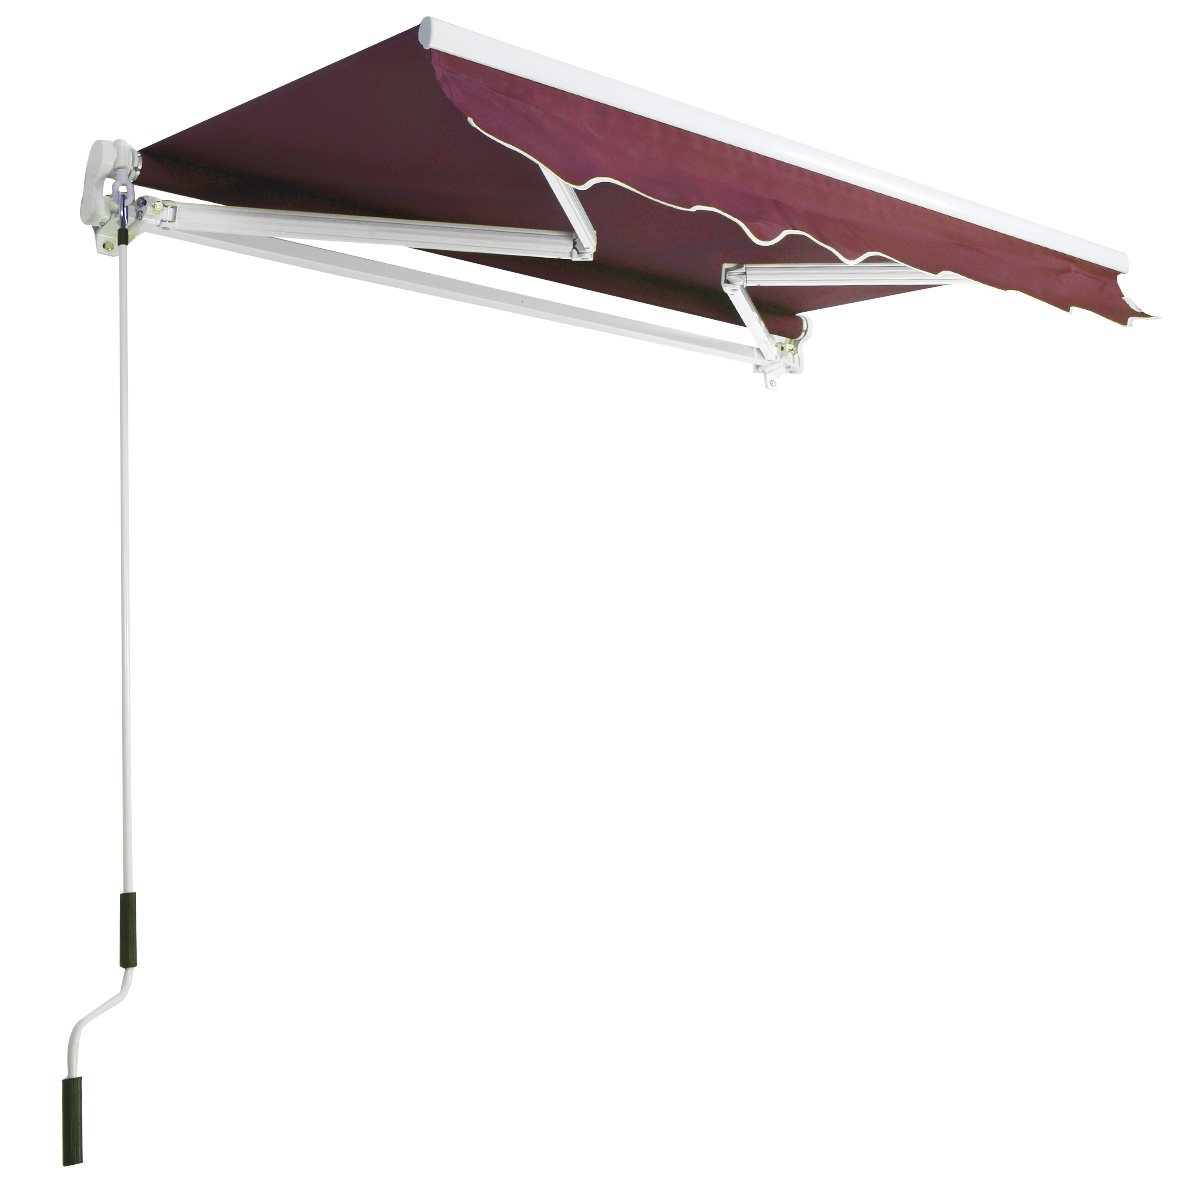 Amazon.com : Goplus Manual Patio 6.4u0027×5u0027 Retractable Deck Awning Sunshade  Shelter Canopy Outdoor New (Burgundy) : Garden U0026 Outdoor